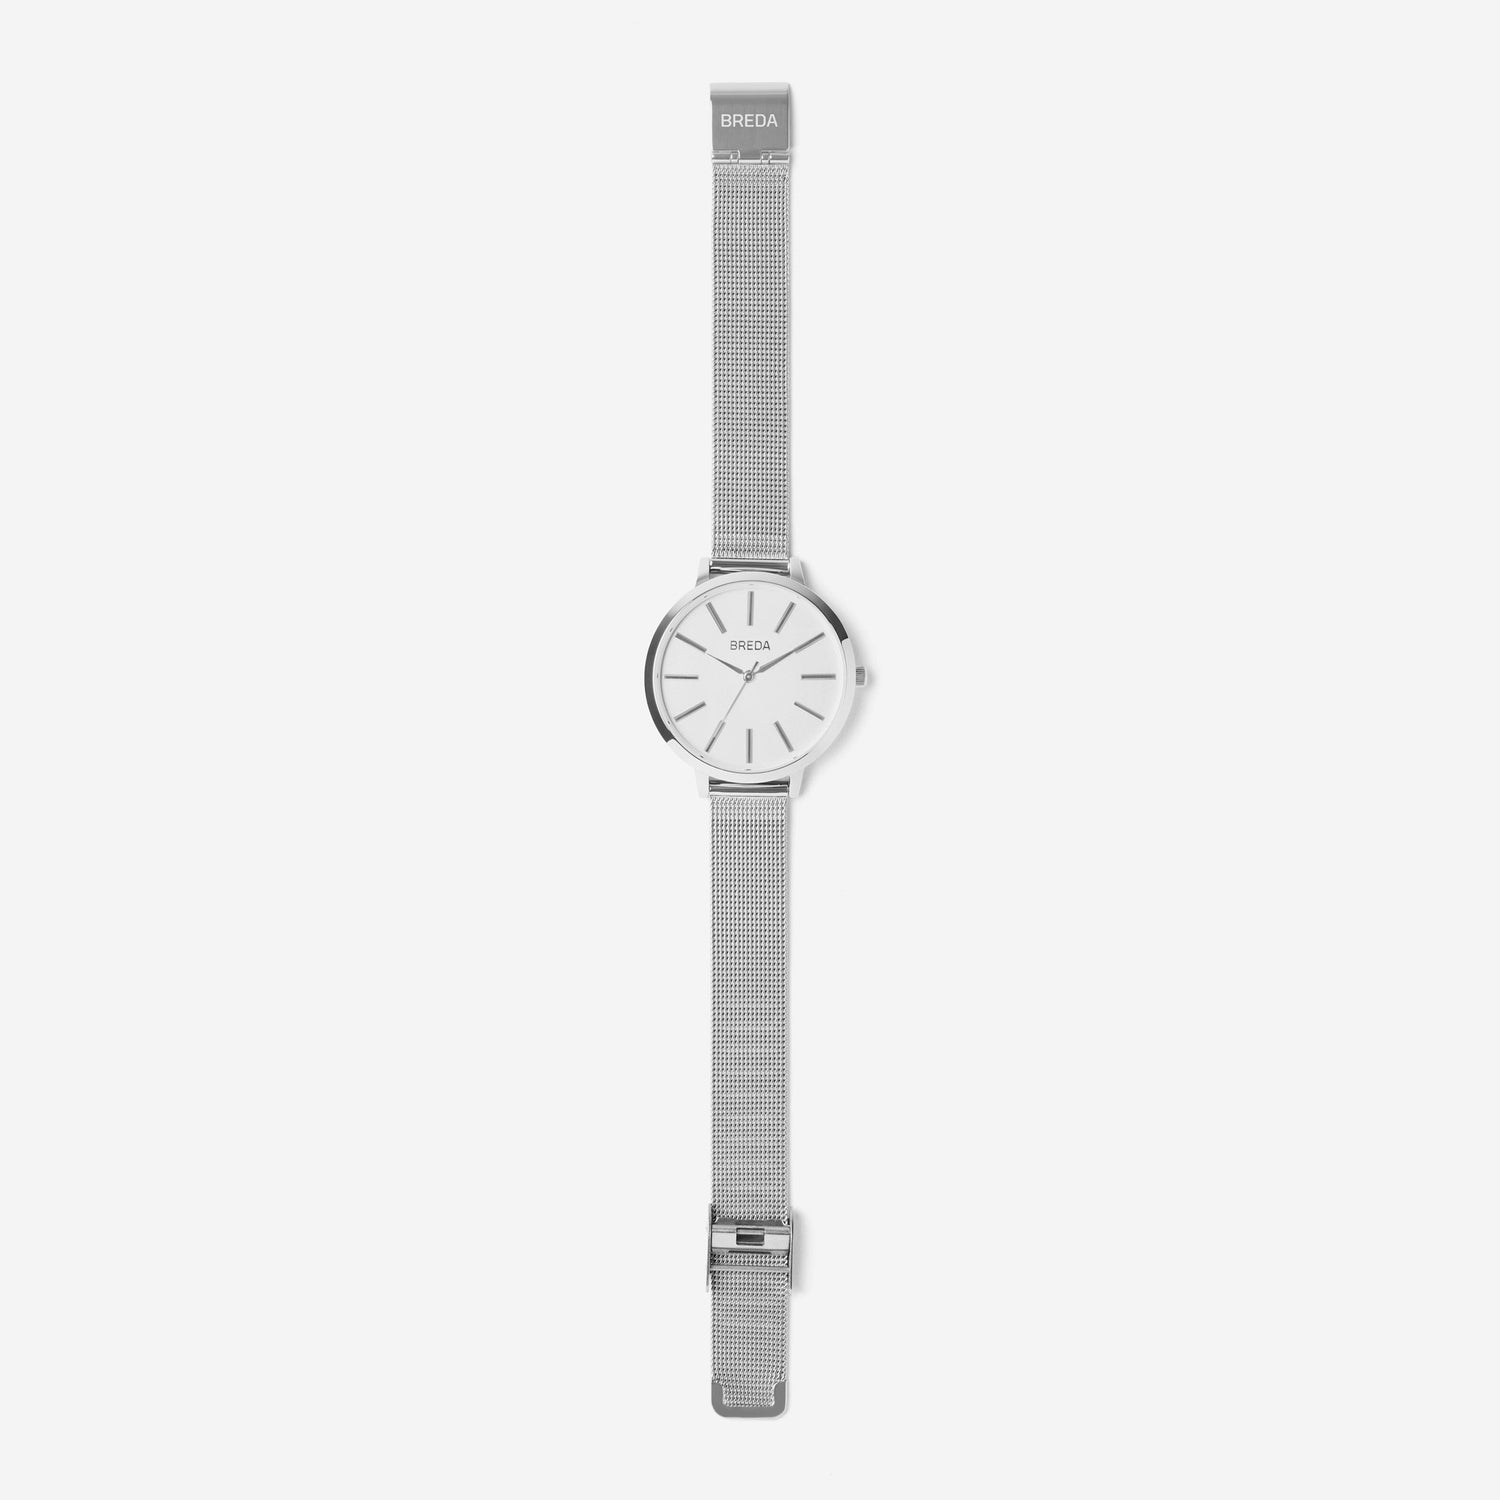 breda-joule-1731c-silver-mesh-watch-long